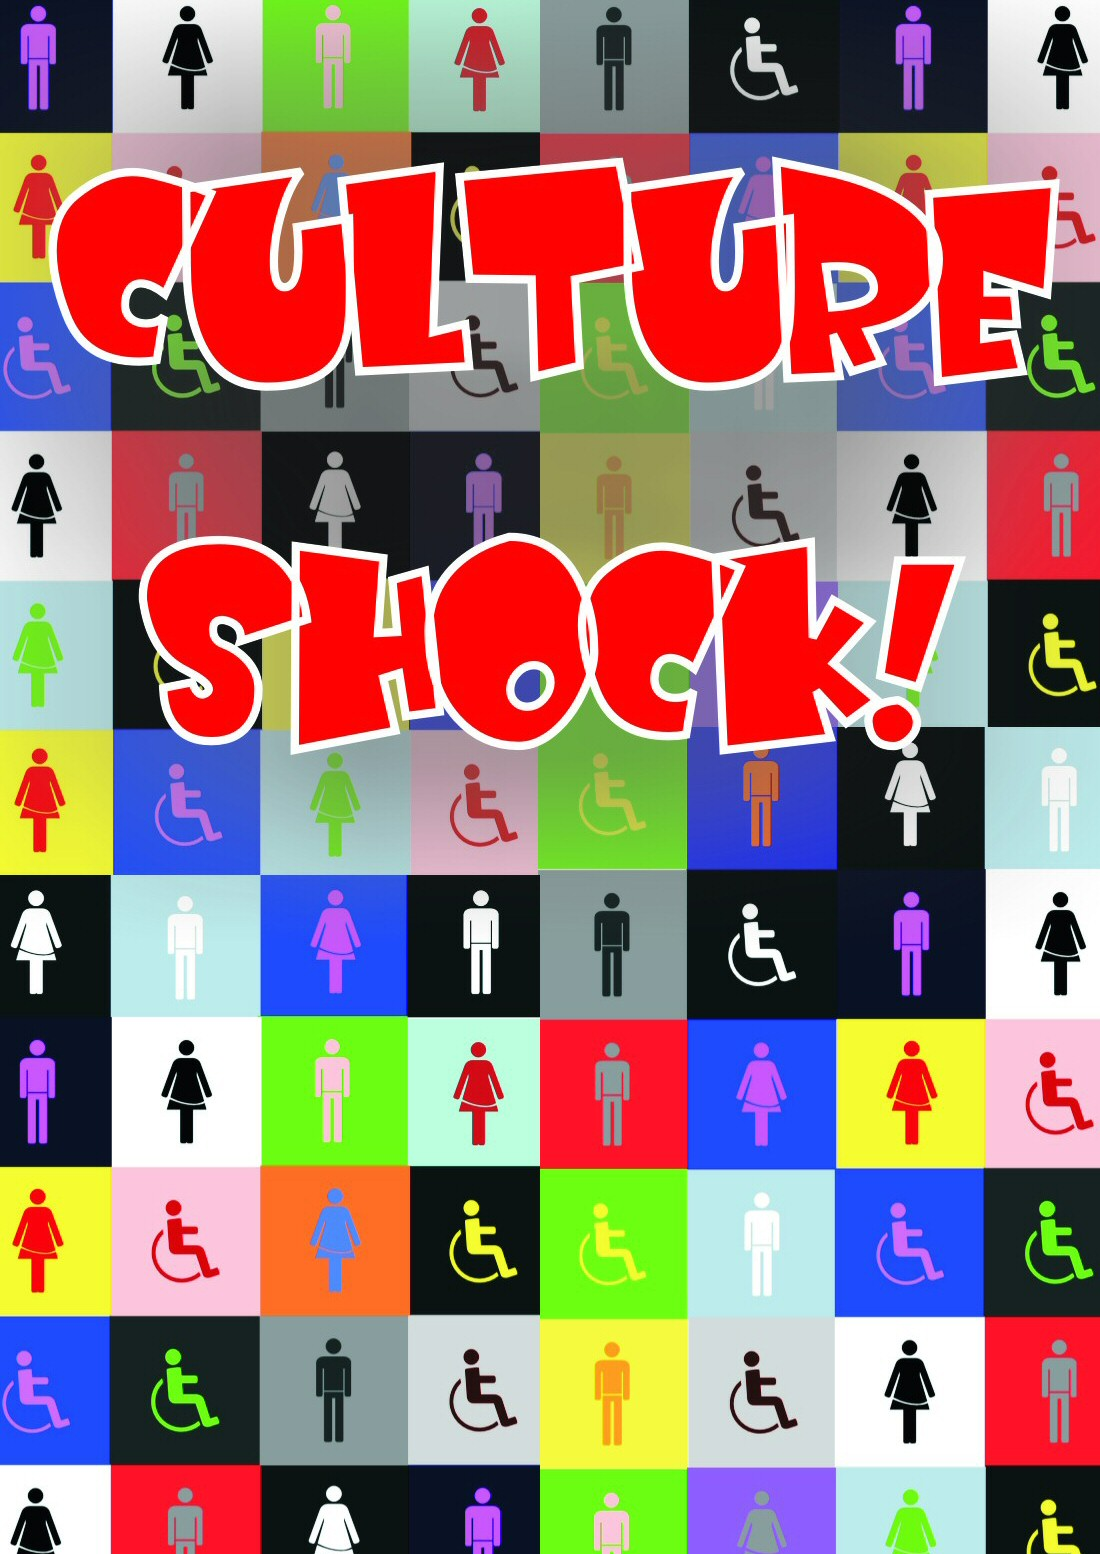 Culture Shock By Blue Orange Writers  Birmingham Fest Culture Shock Help Writing Book also Freelance Writing Services Com  Technical Writing Help